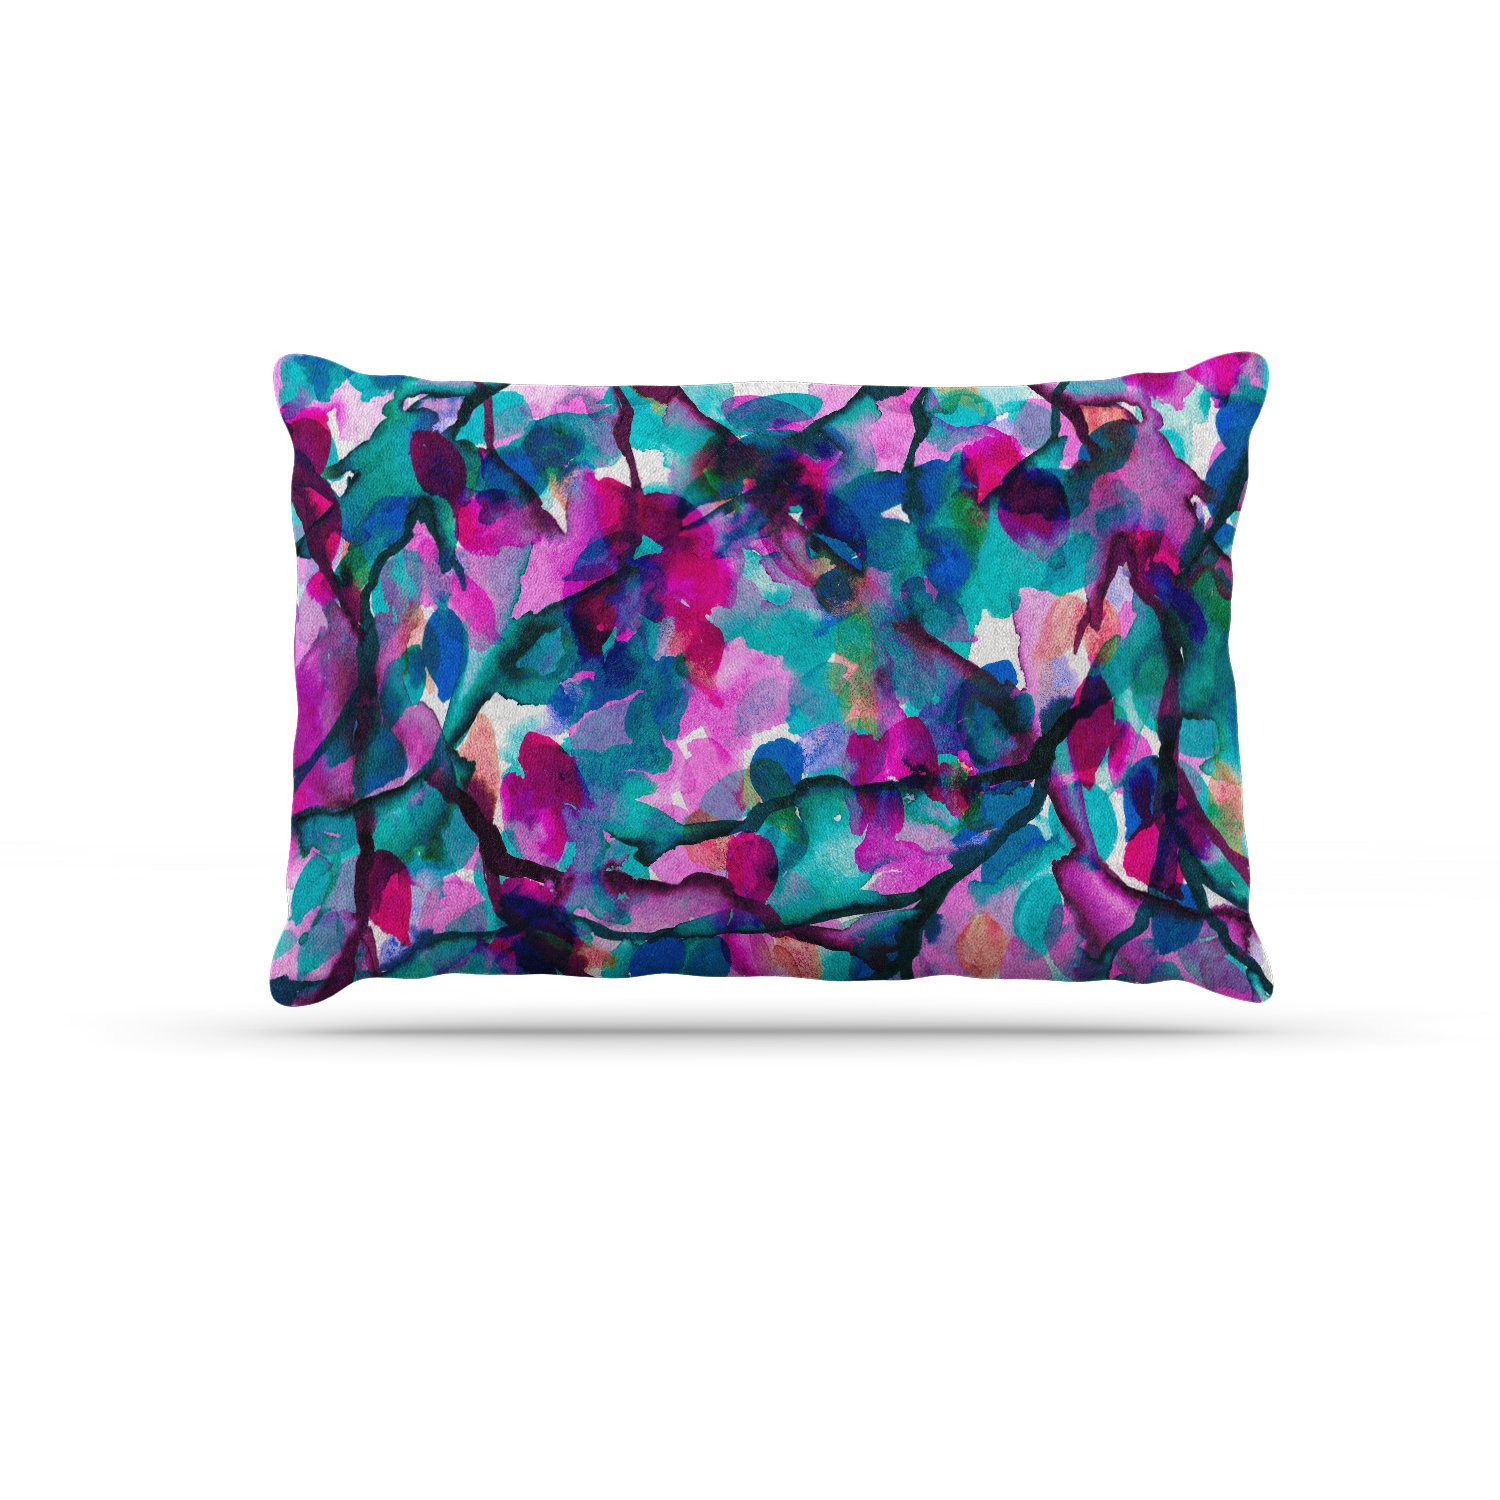 KESS InHouse EBI Emporium by Any Other Name 1  Magenta Teal Watercolor Dog Bed, 30  x 40